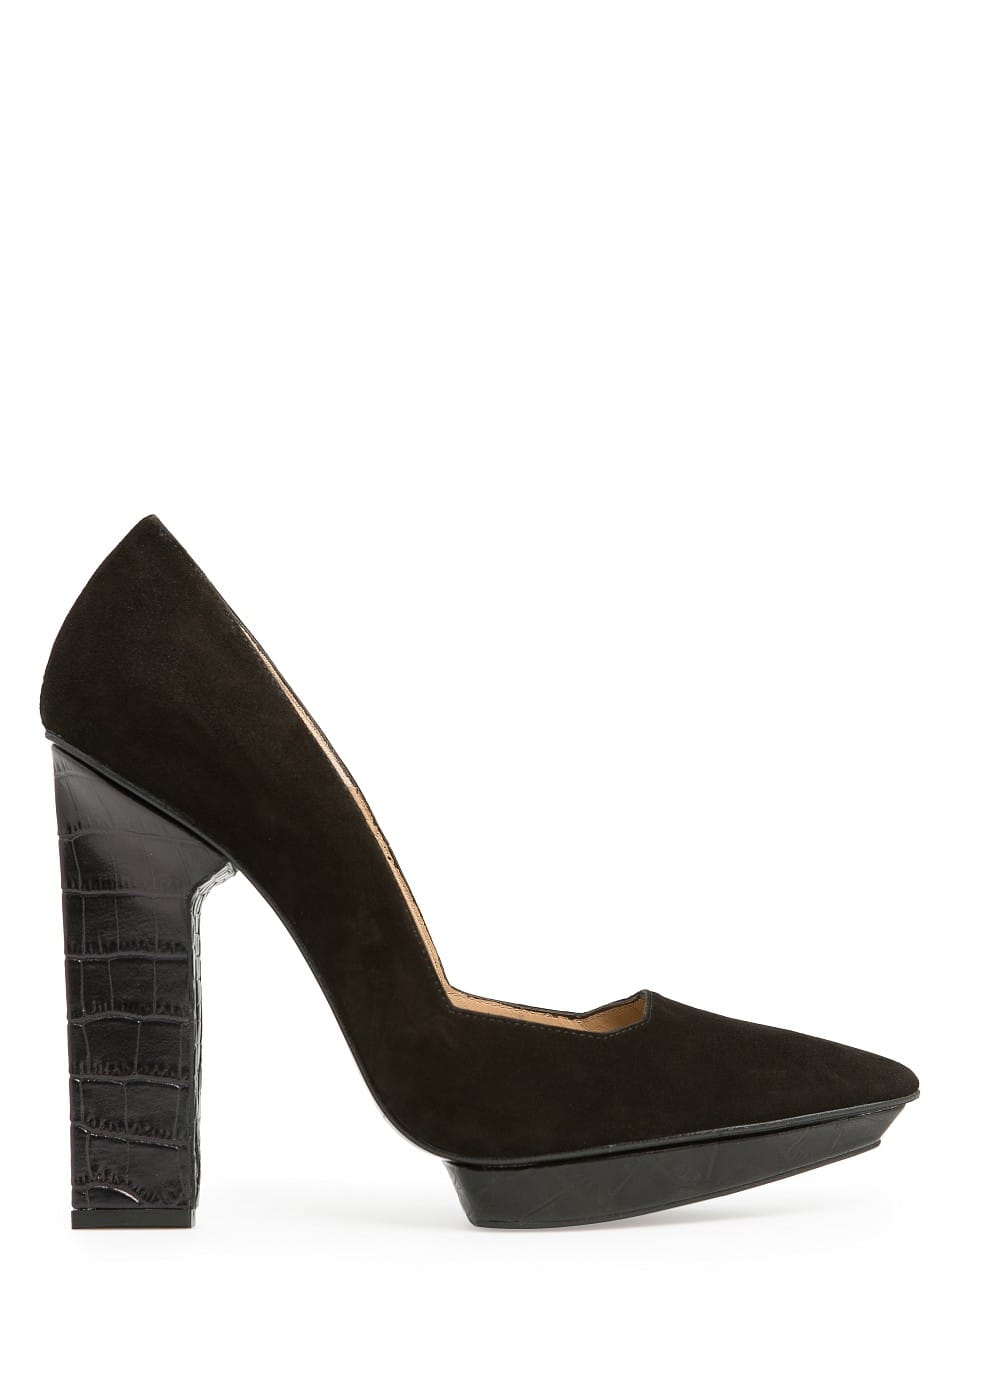 COMBI SUEDE STILETTO SHOES